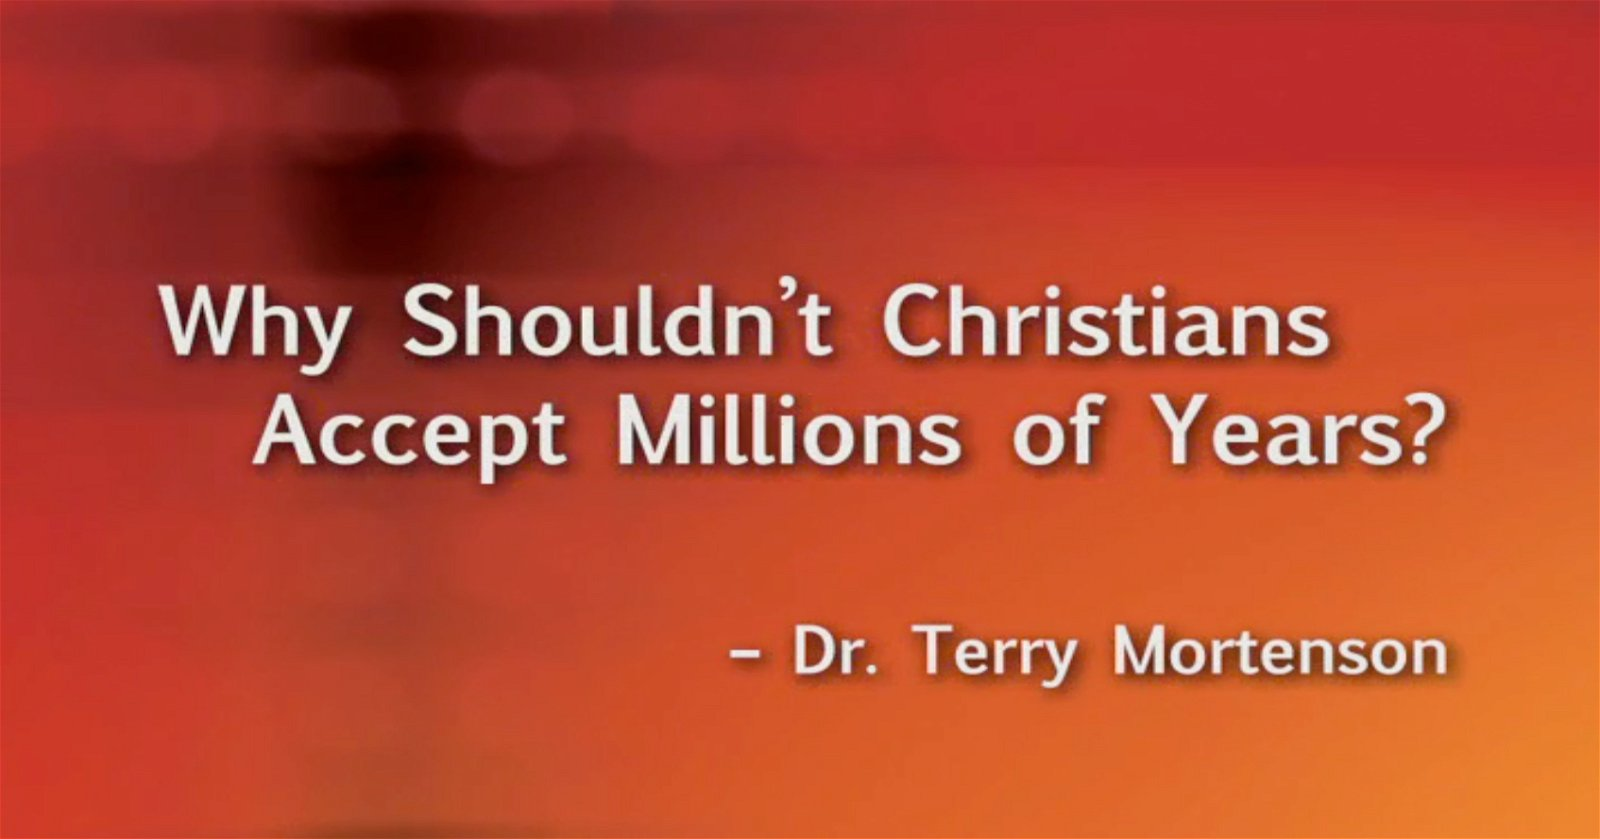 Why Shouldn't Christians Accept Millions of Years?